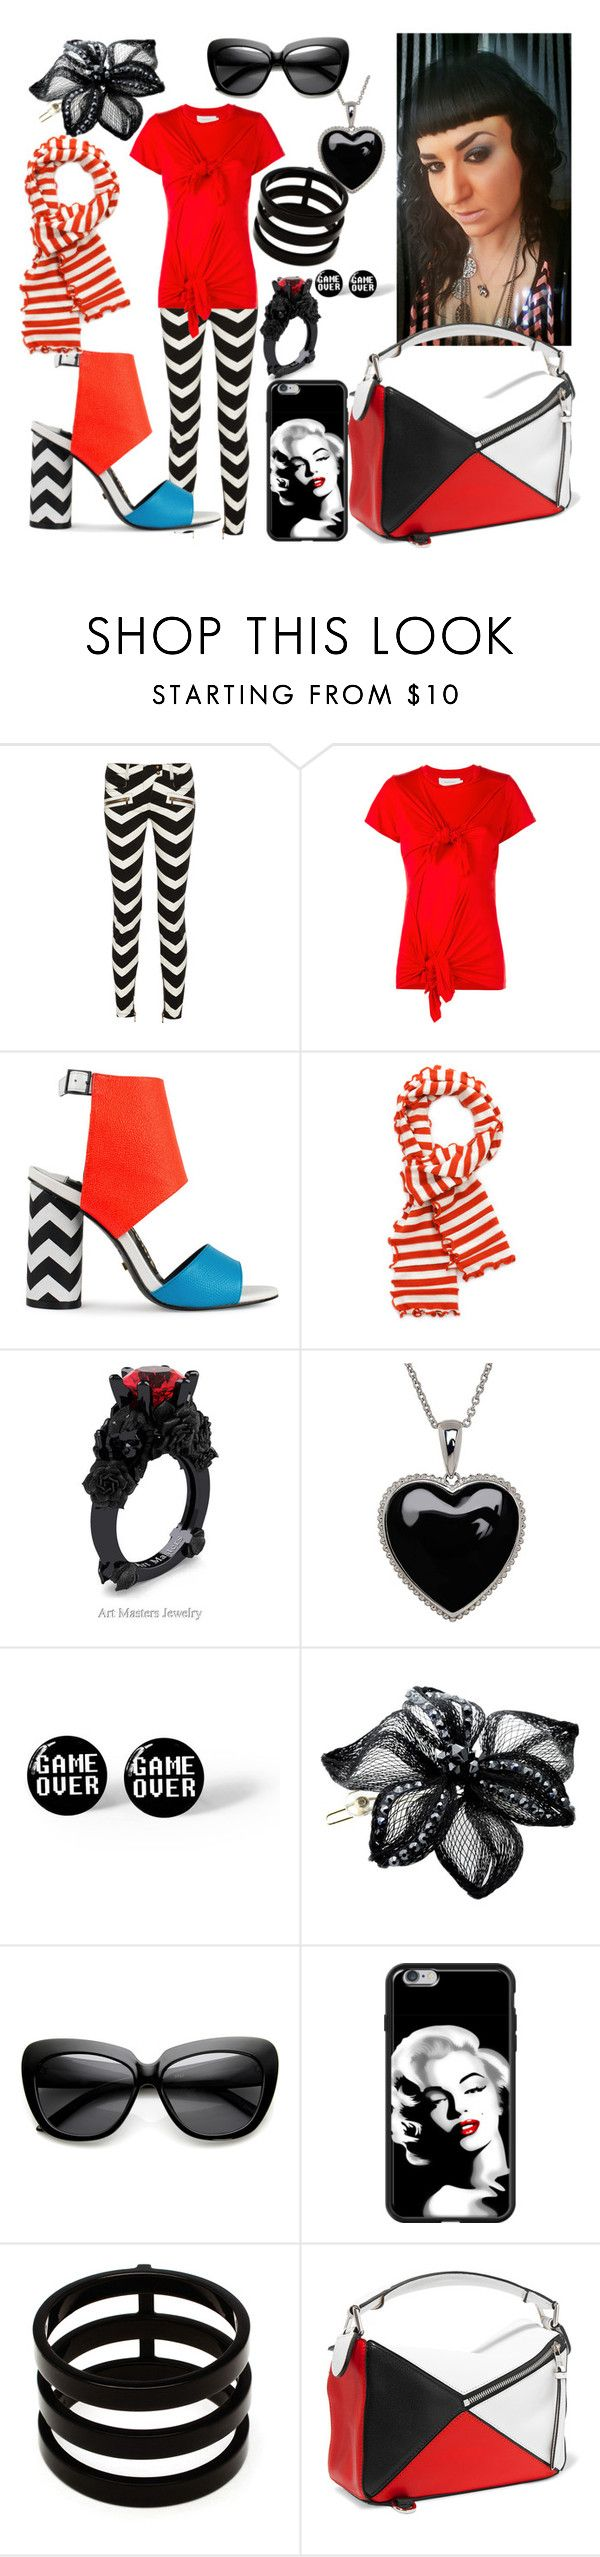 """Untitled #362"" by mentalterrorist on Polyvore featuring Balmain, Marques'Almeida, Kat Maconie, Slater Zorn, Lord & Taylor, Colette Malouf, Repossi and Loewe"